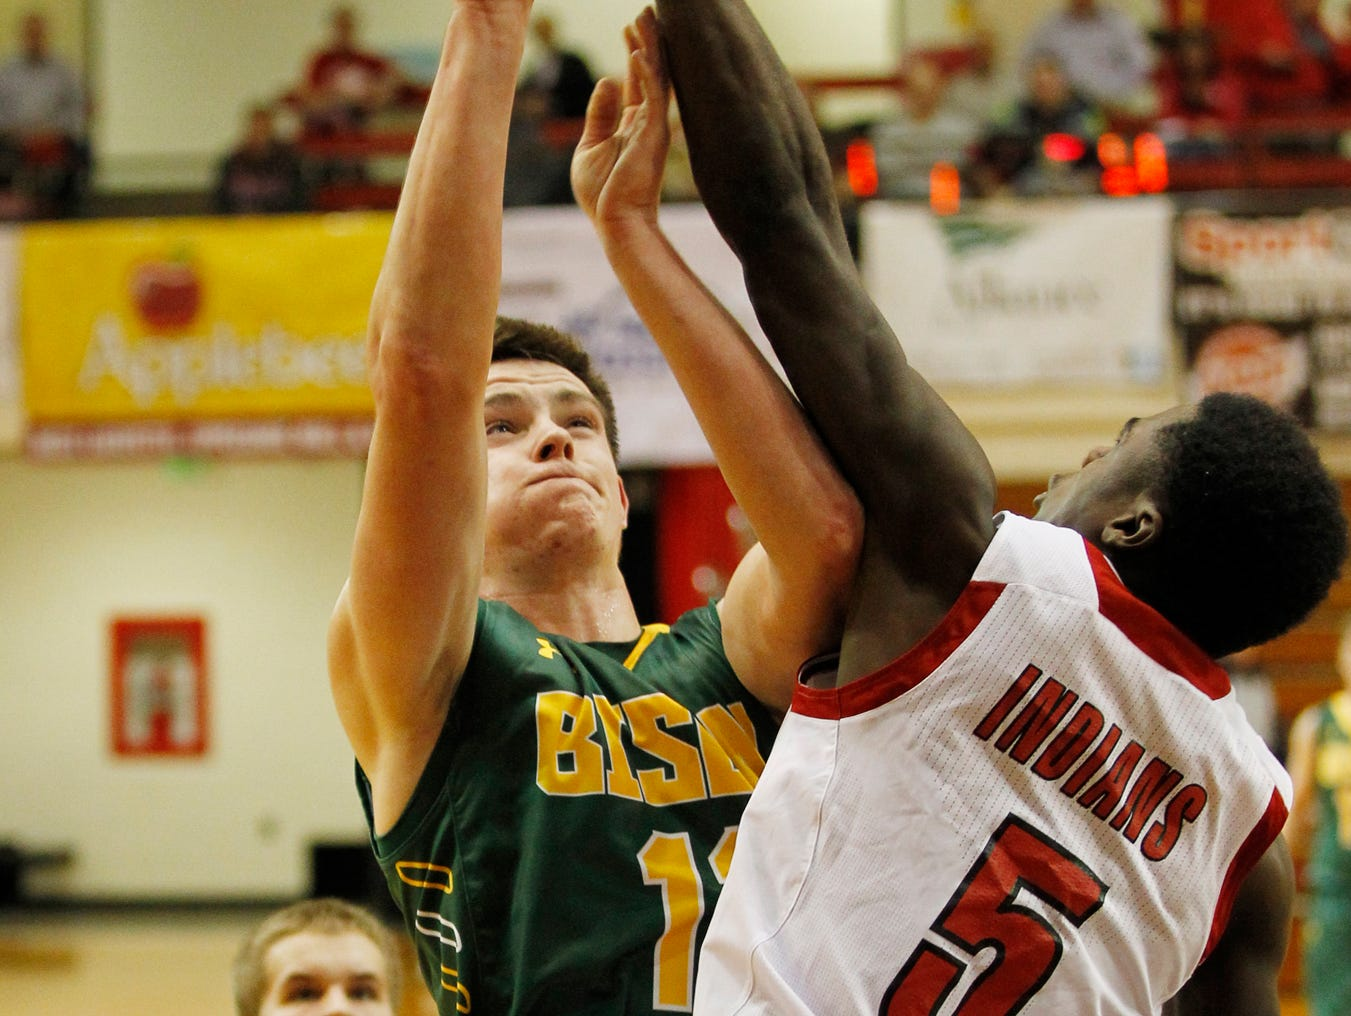 Benton Central's Devin Crabtree has his shot blocked by Kris Goodlow of Twin Lakes in the J&C Hoops Classic Monday, November 30, 2015, at Jefferson High School. Twin Lakes thumped Benton Central 75-44.